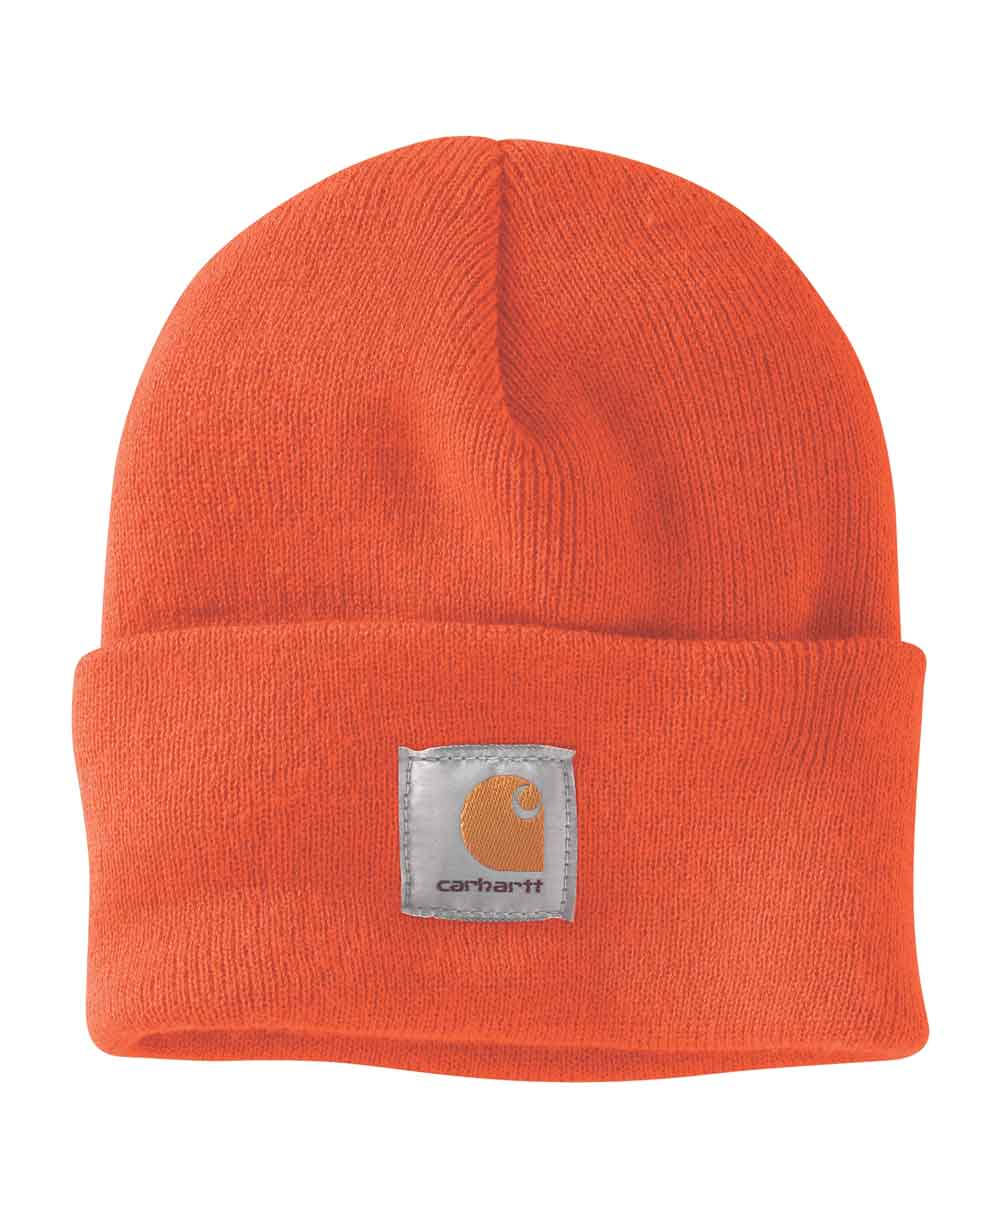 Work in Progress Acrylic Watch Bonnet Homme Brite Orange